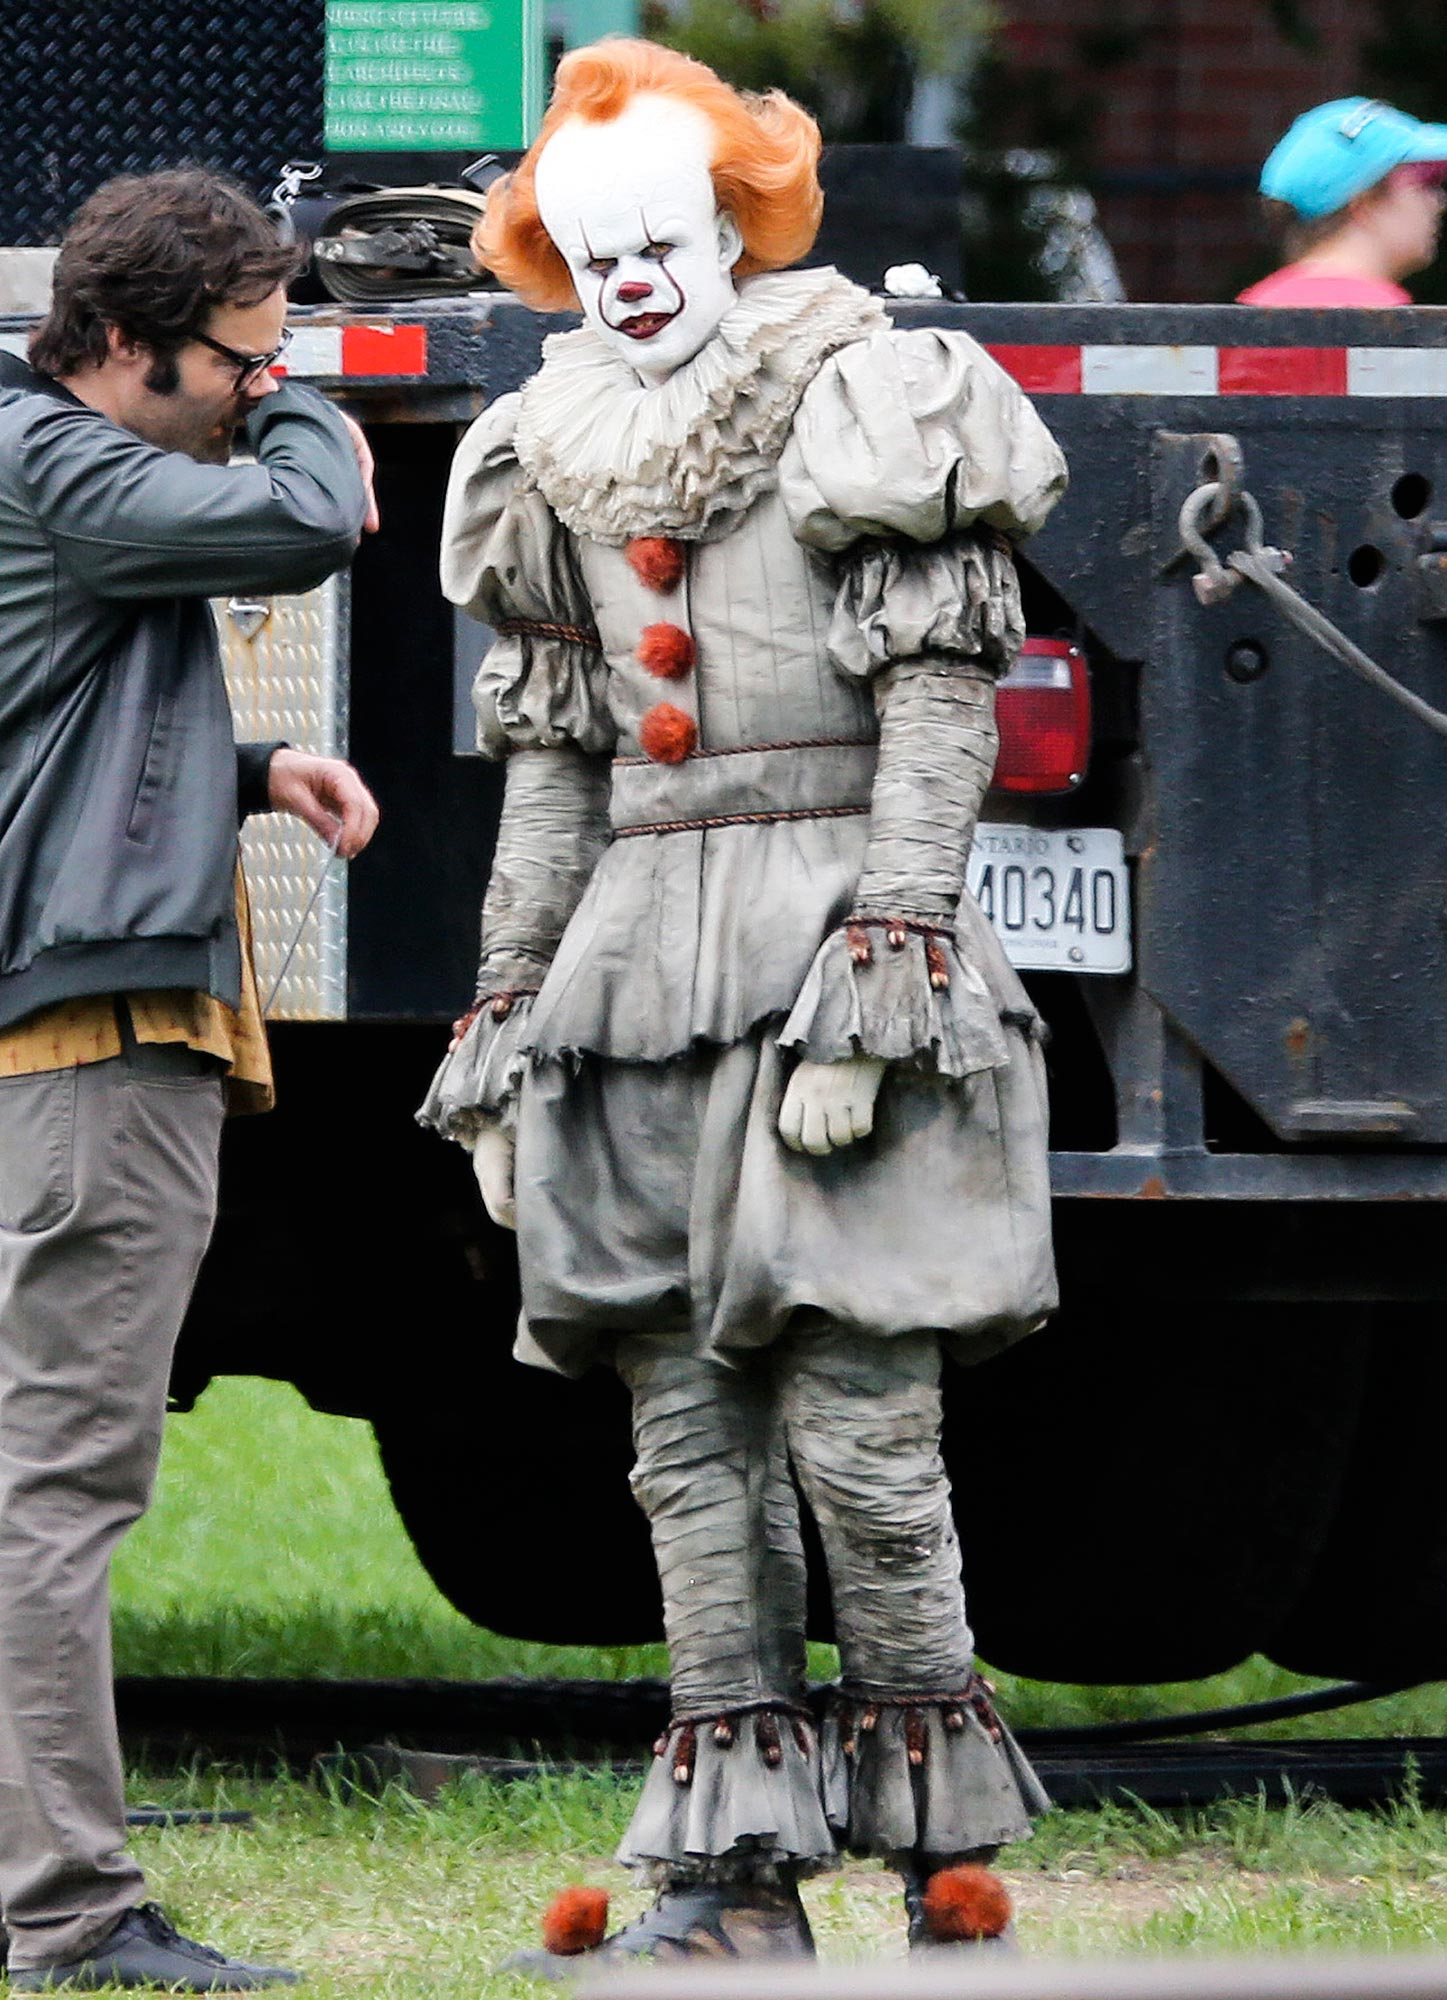 EXCLUSIVE: Bill Skarsgard Scares Bill Hader While Dressed as Pennywise on set of 'It: Chapter Two' in Port Hope, Canada.